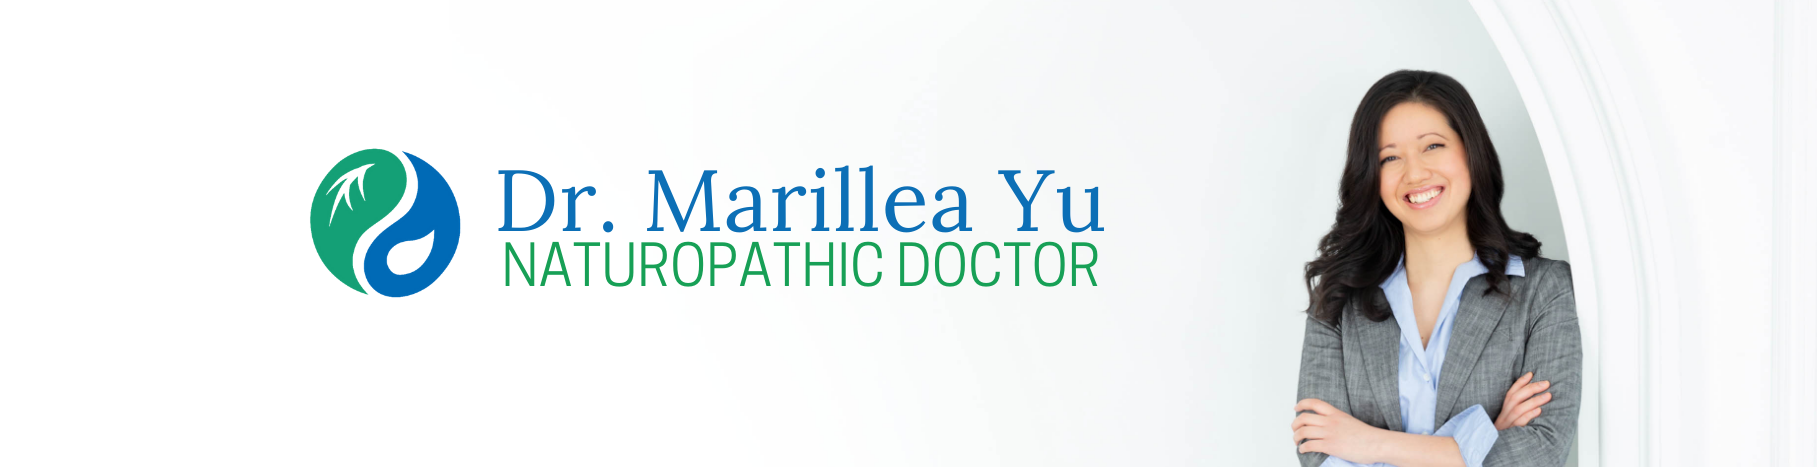 Dr. Marillea Yu, Naturopathic Doctor